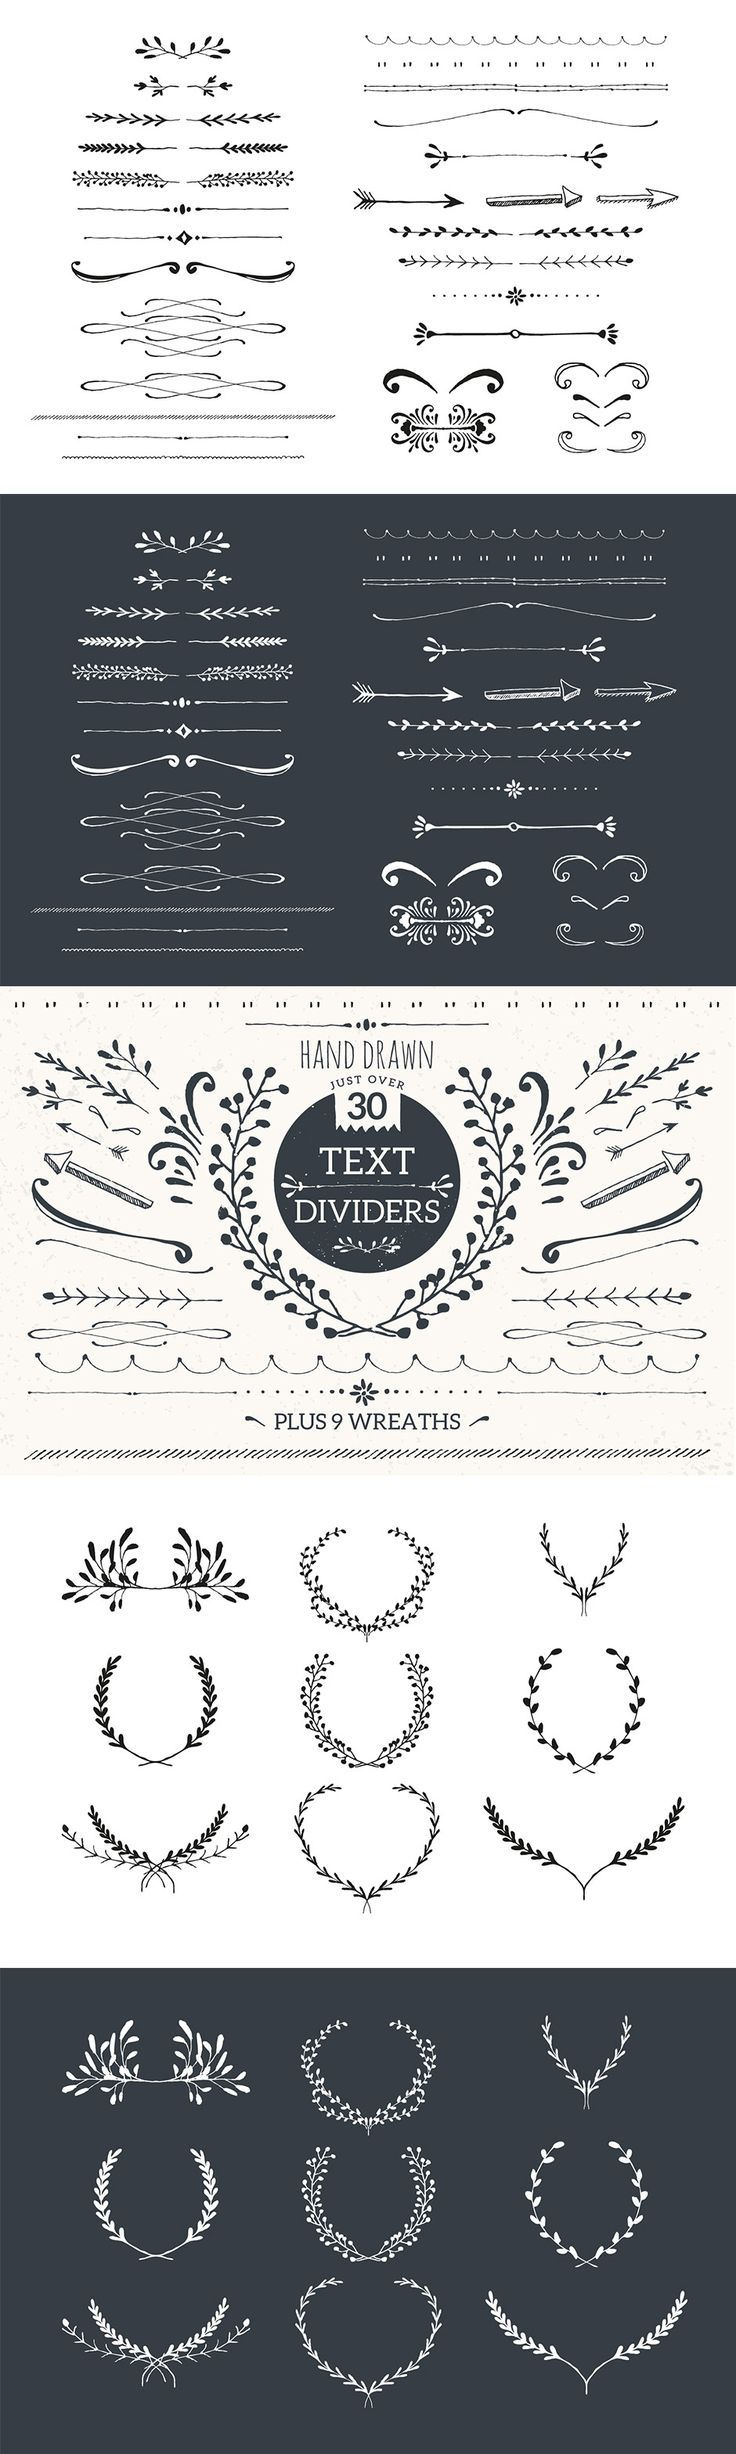 The Essential, Creative Design Arsenal (1000s of Best-Selling Resources) Just $29 - Text Dividers Mini Pack